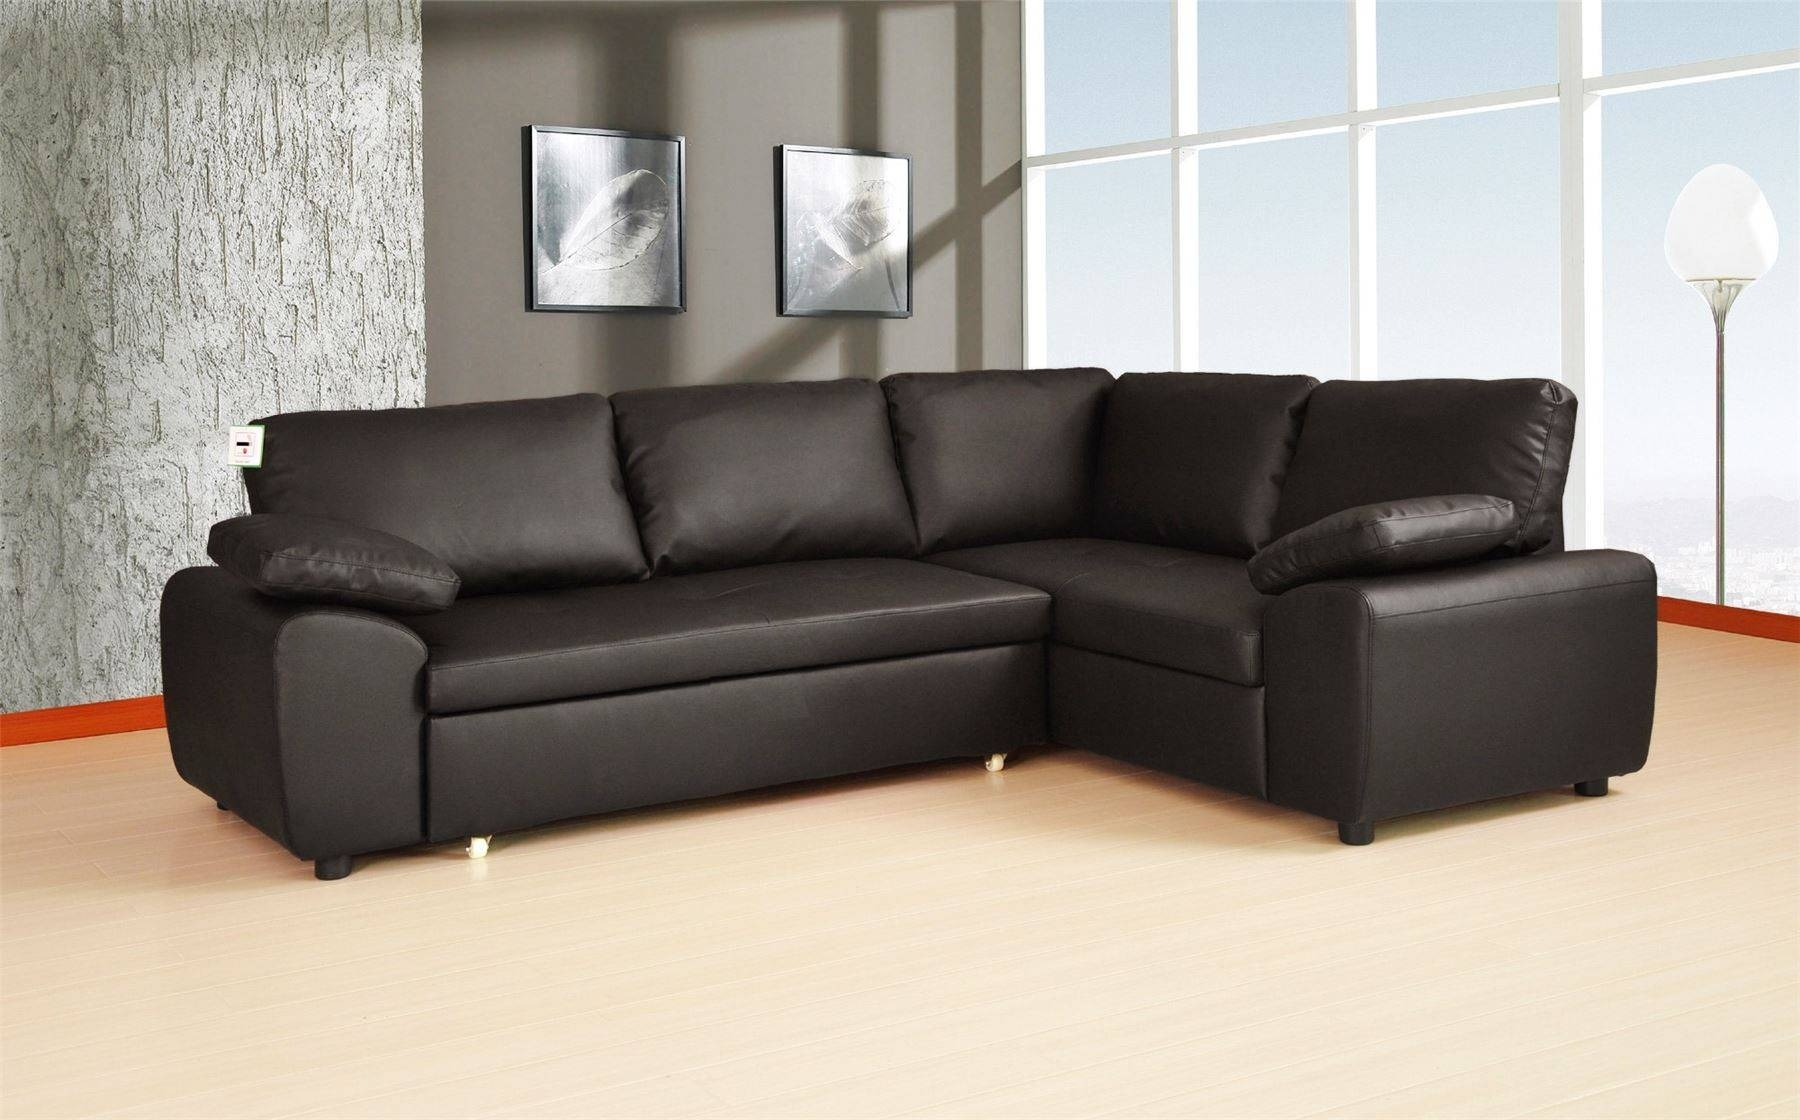 Sofa Bed Leather Corner | Tehranmix Decoration pertaining to Leather Storage Sofas (Image 21 of 30)